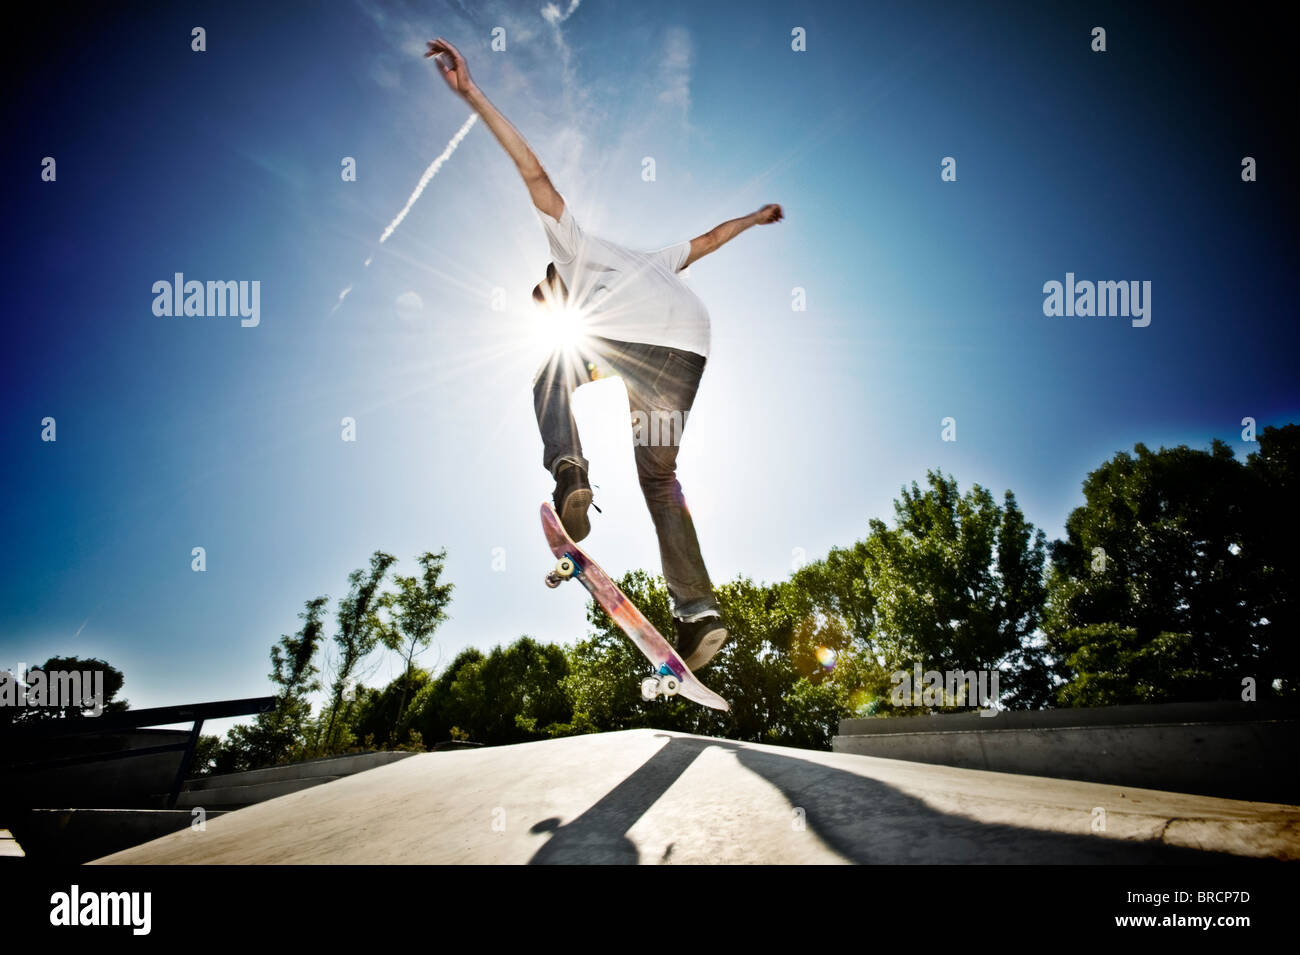 Faire un tour de skate skateur Photo Stock